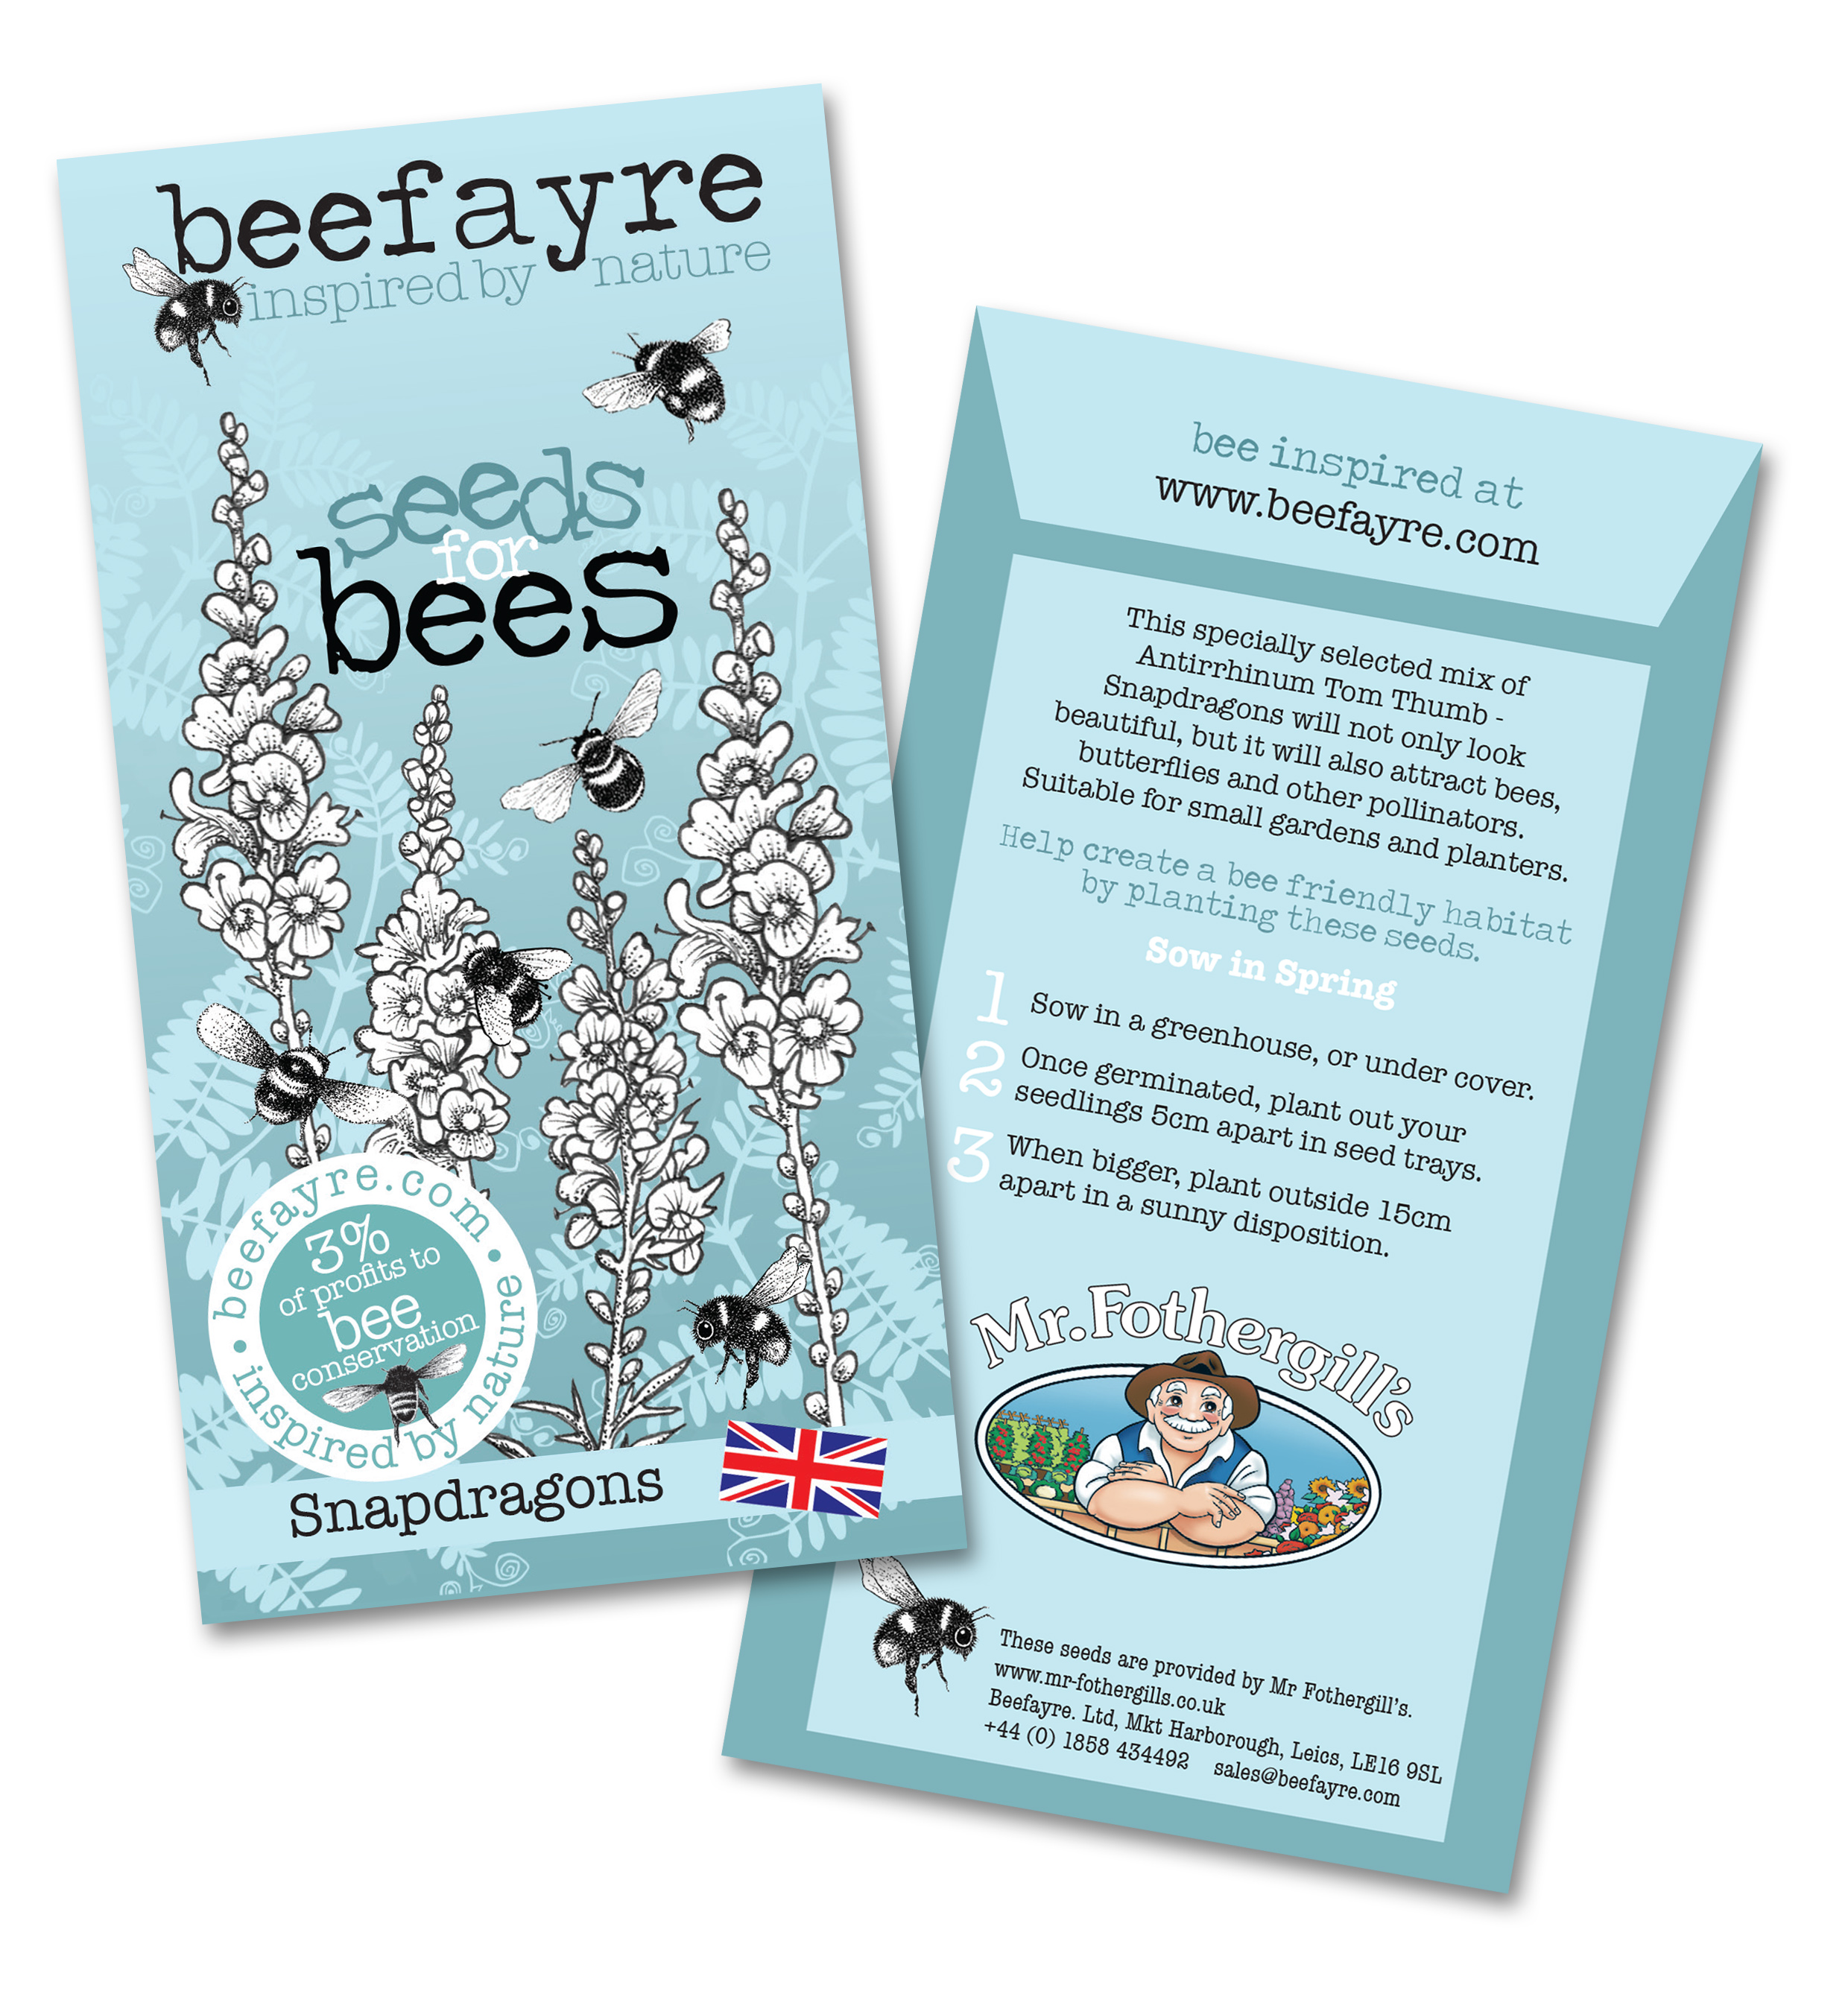 beefayre-seeds-for-bees-snapdragons